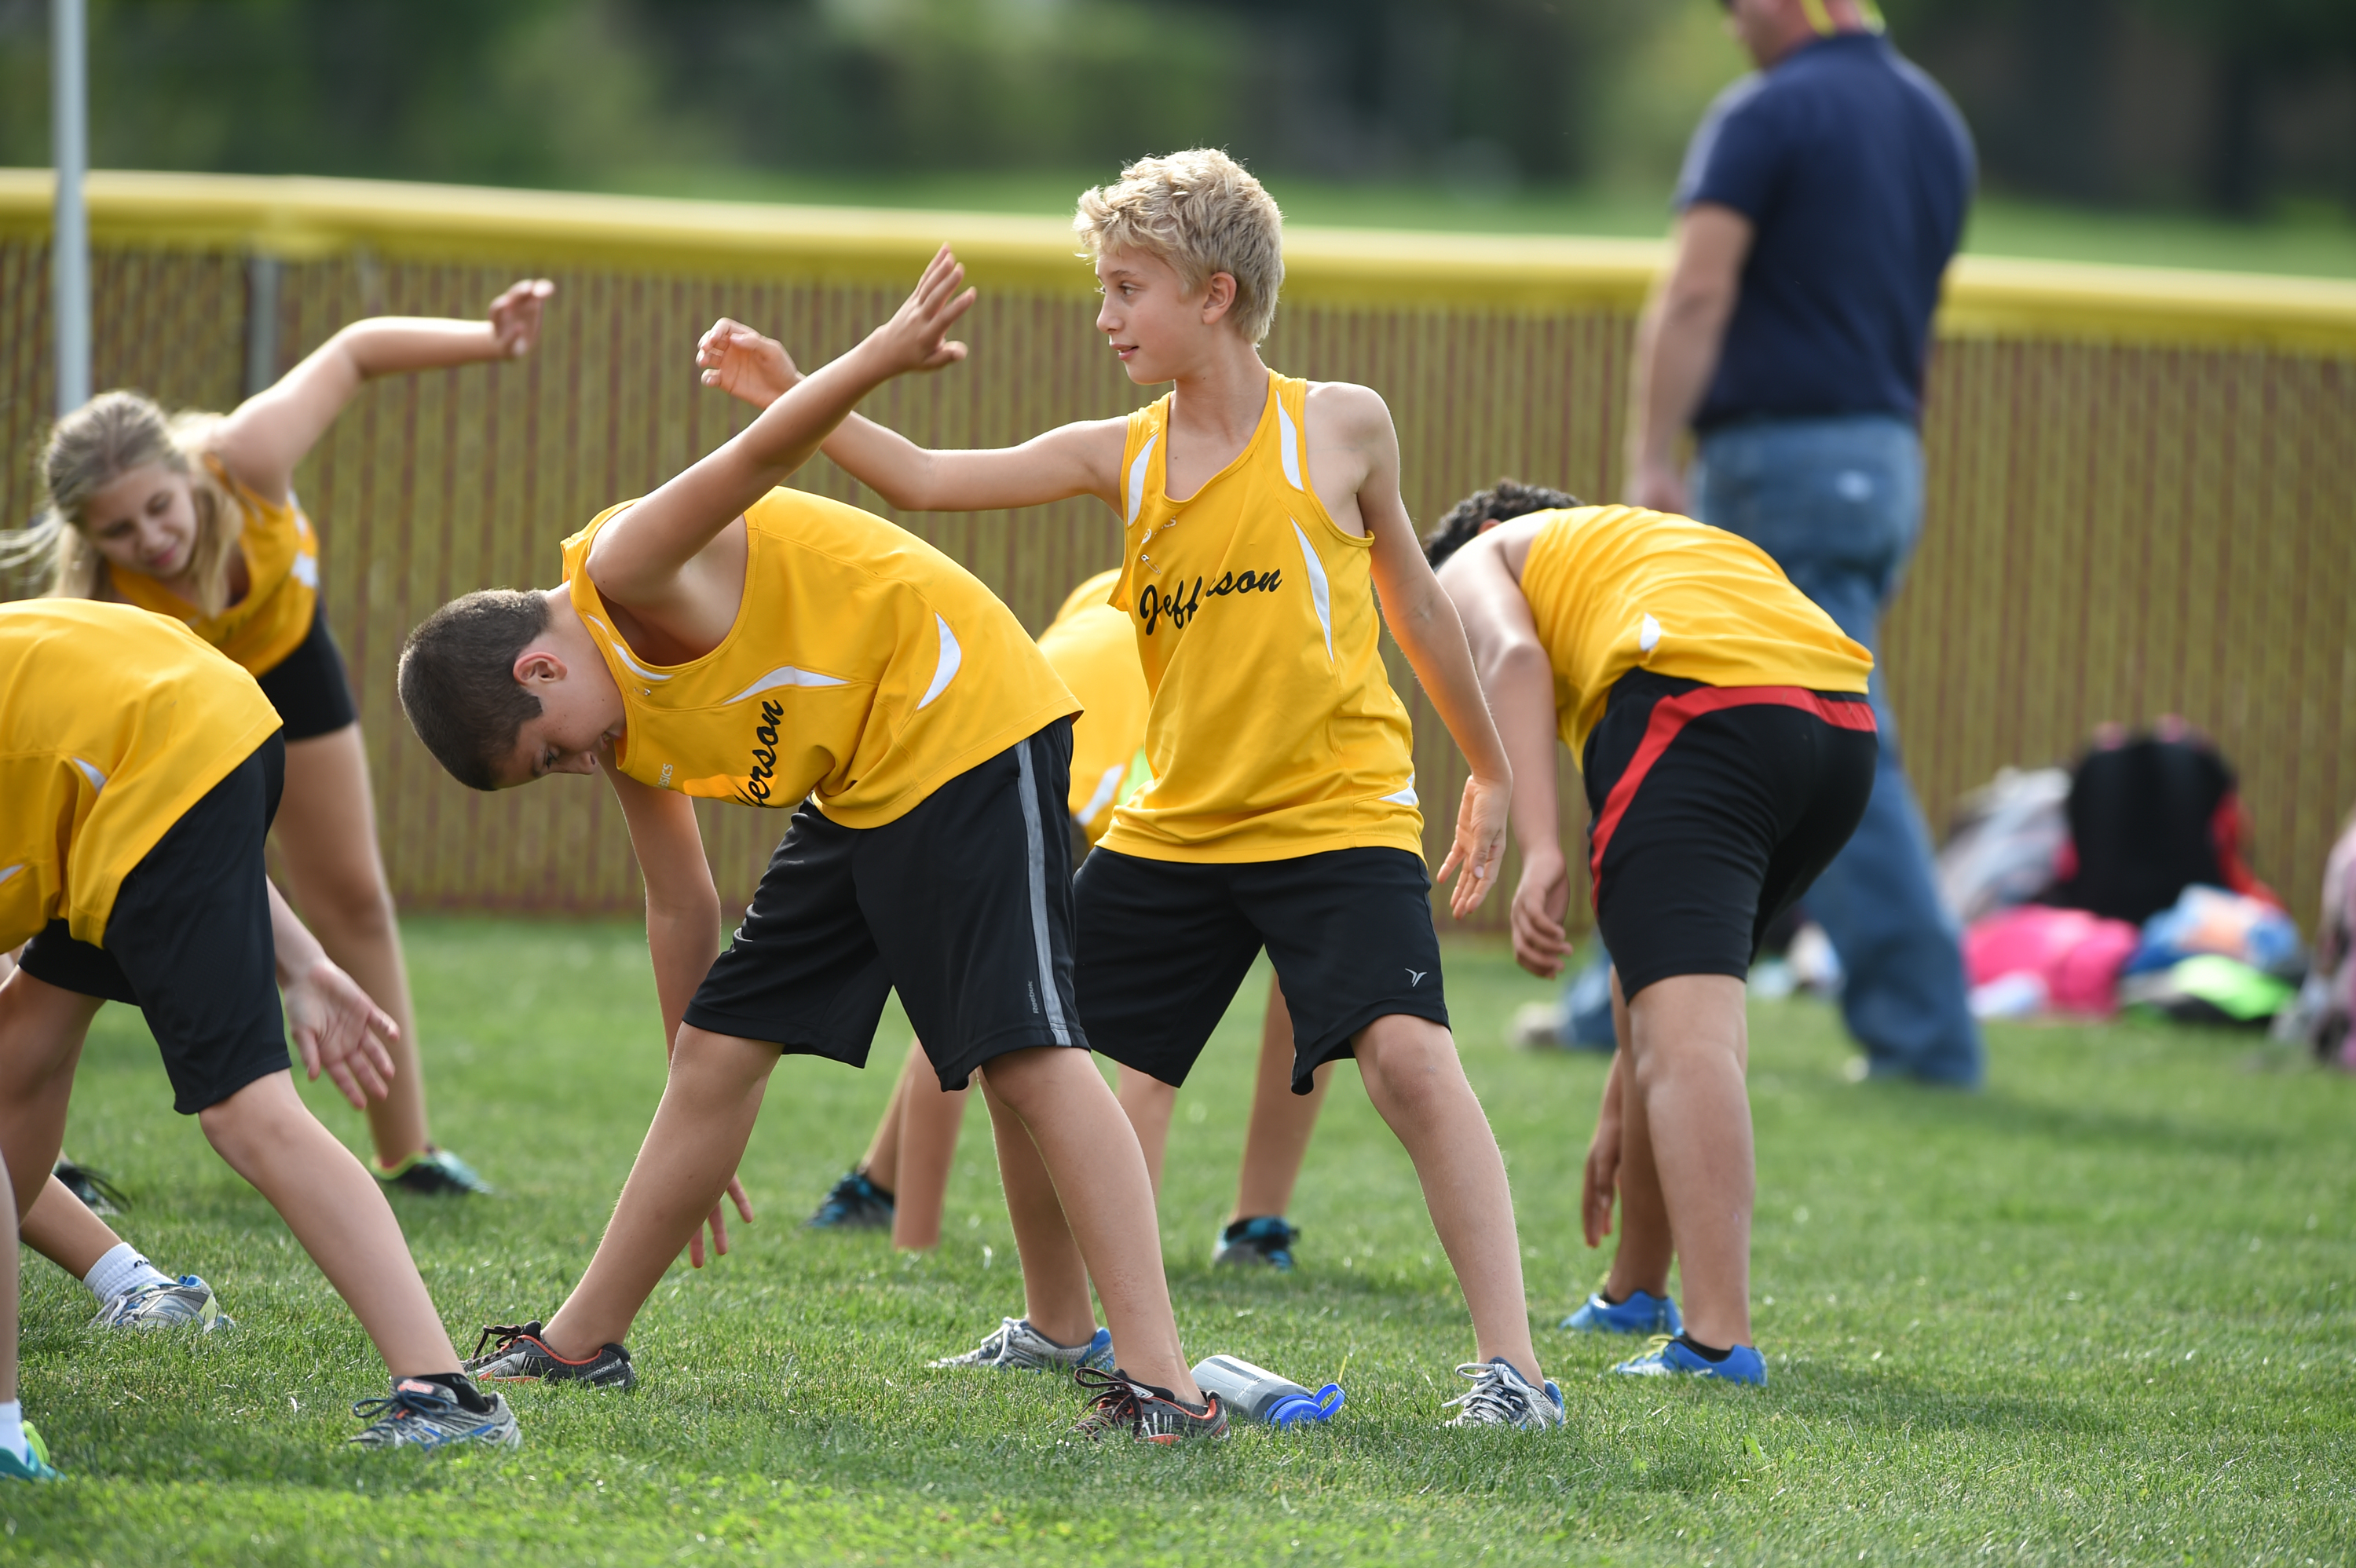 Exercise Training in Youth